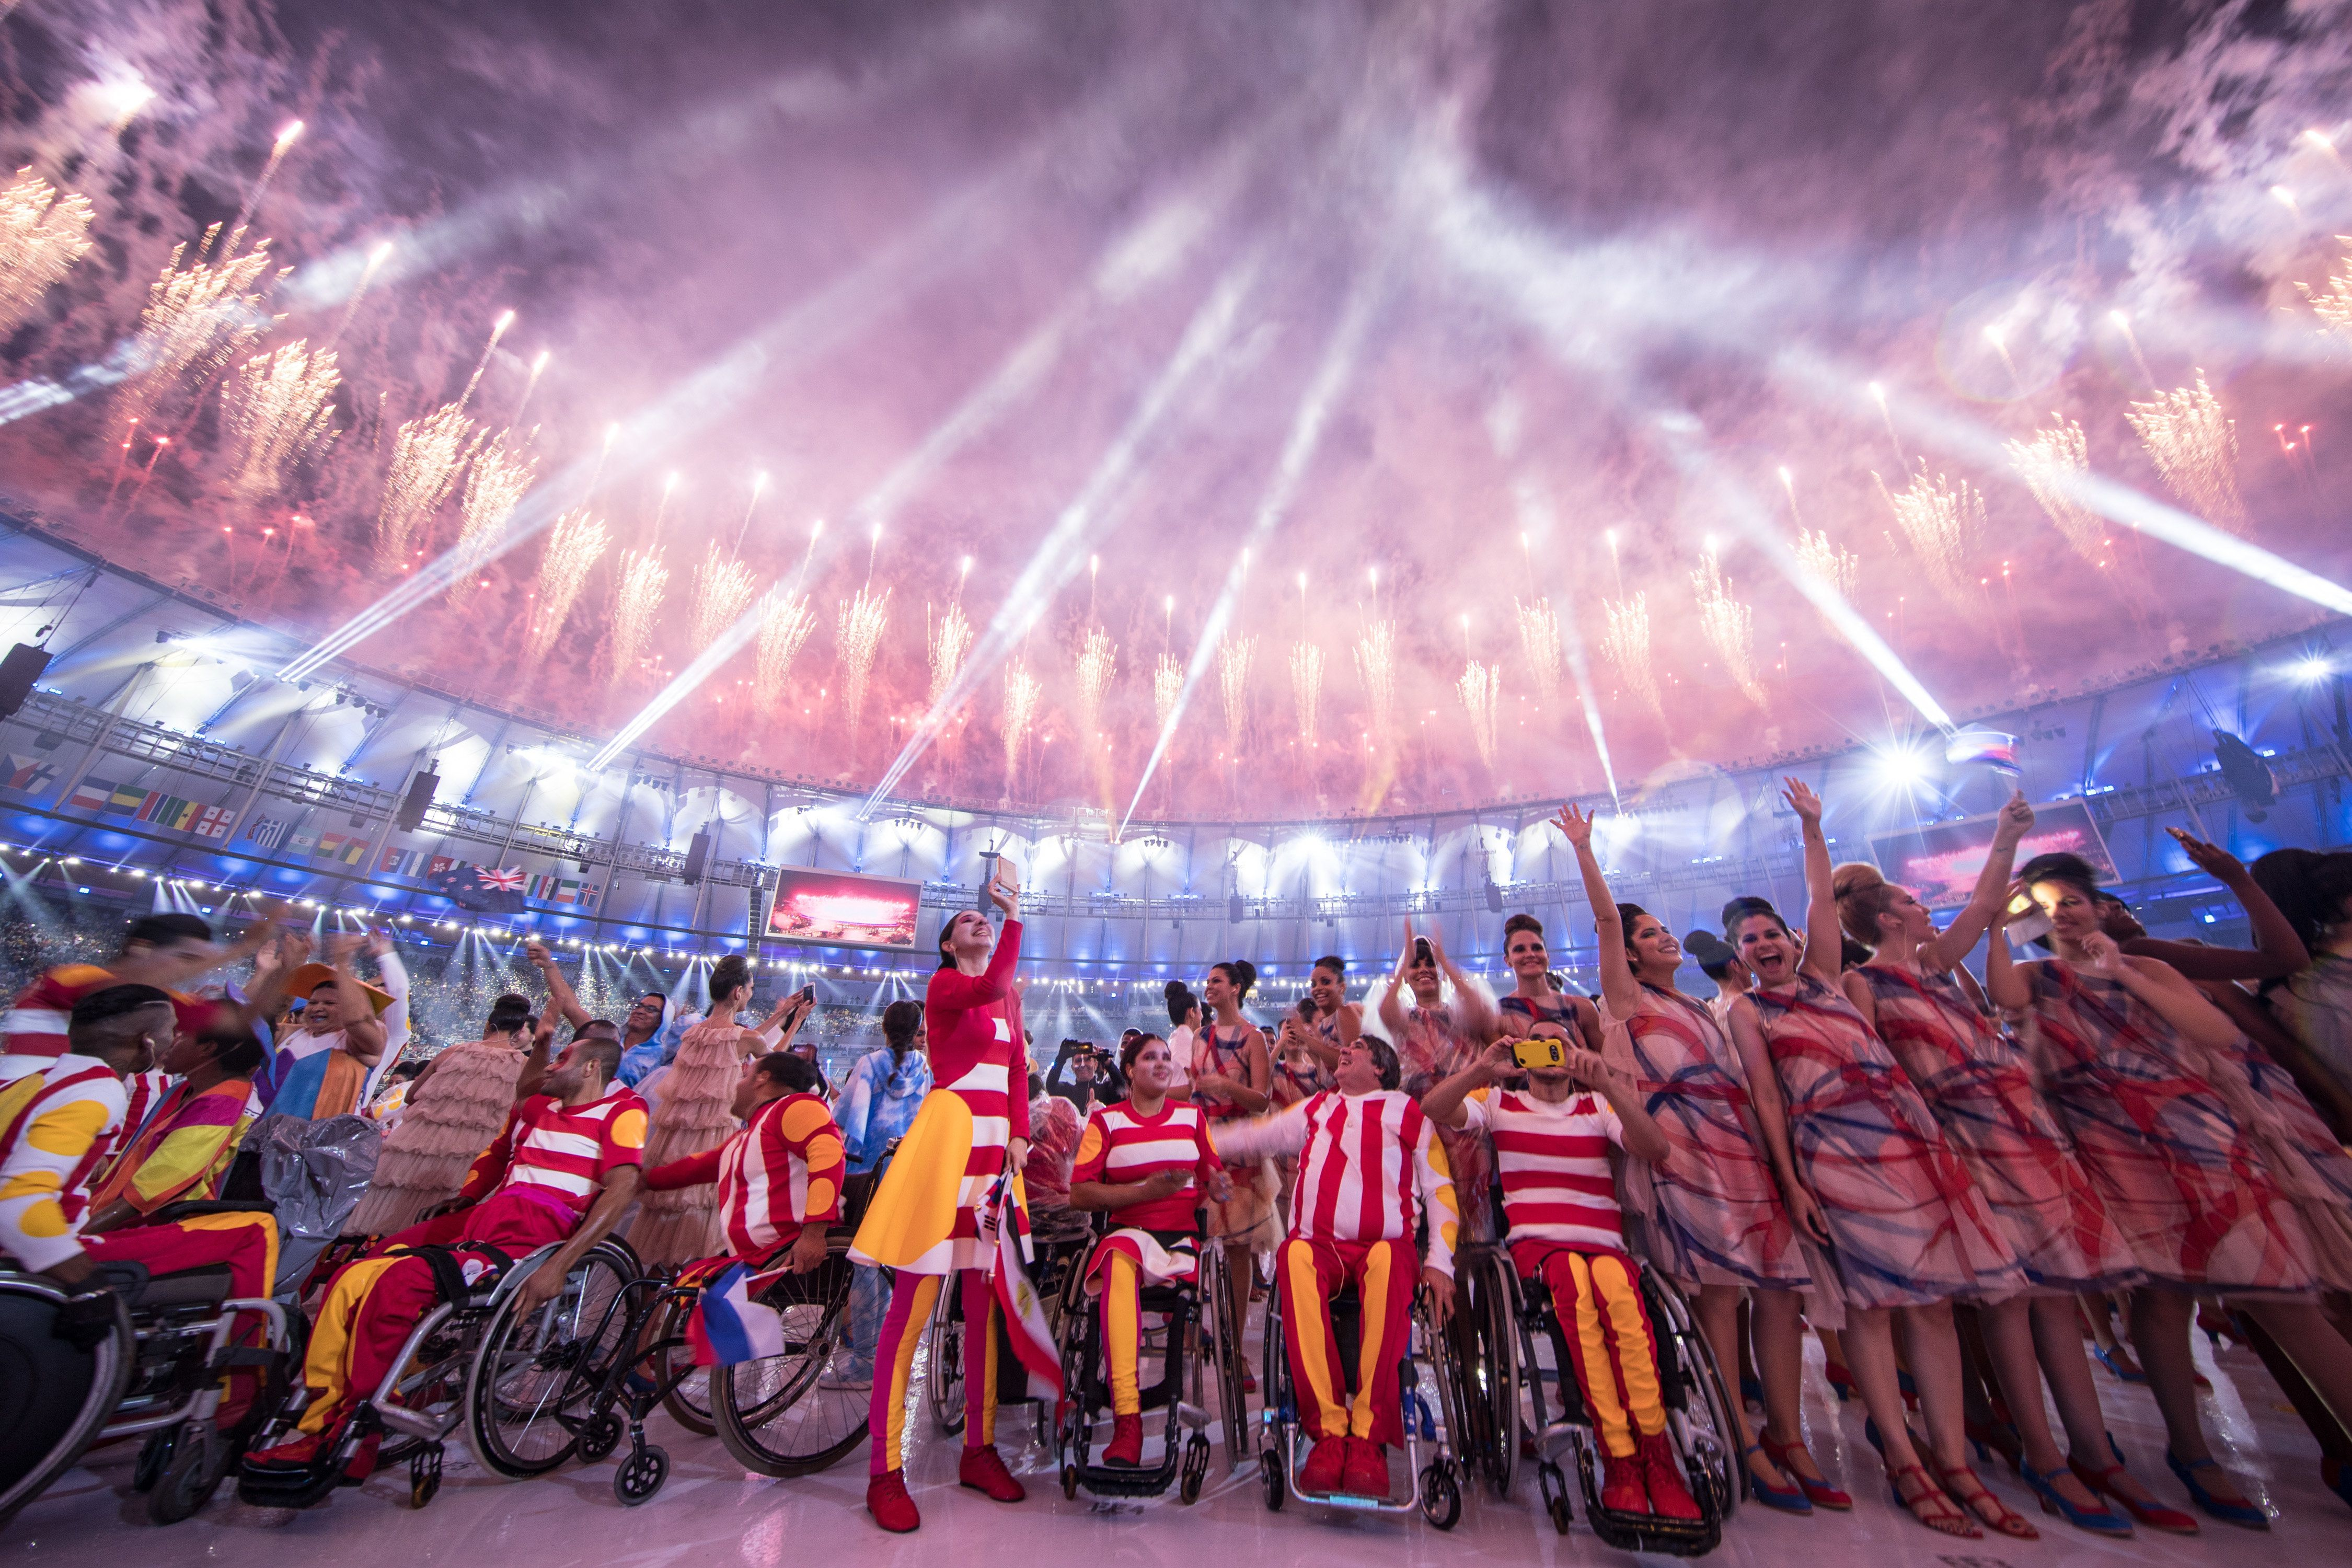 TOPSHOT - Participants react under fireworks during the opening ceremony of the Rio 2016 Paralympic Games at the Maracana stadium in Rio de Janeiro on September 7, 2016. / AFP / YASUYOSHI CHIBA        (Photo credit should read YASUYOSHI CHIBA/AFP/Getty Images)